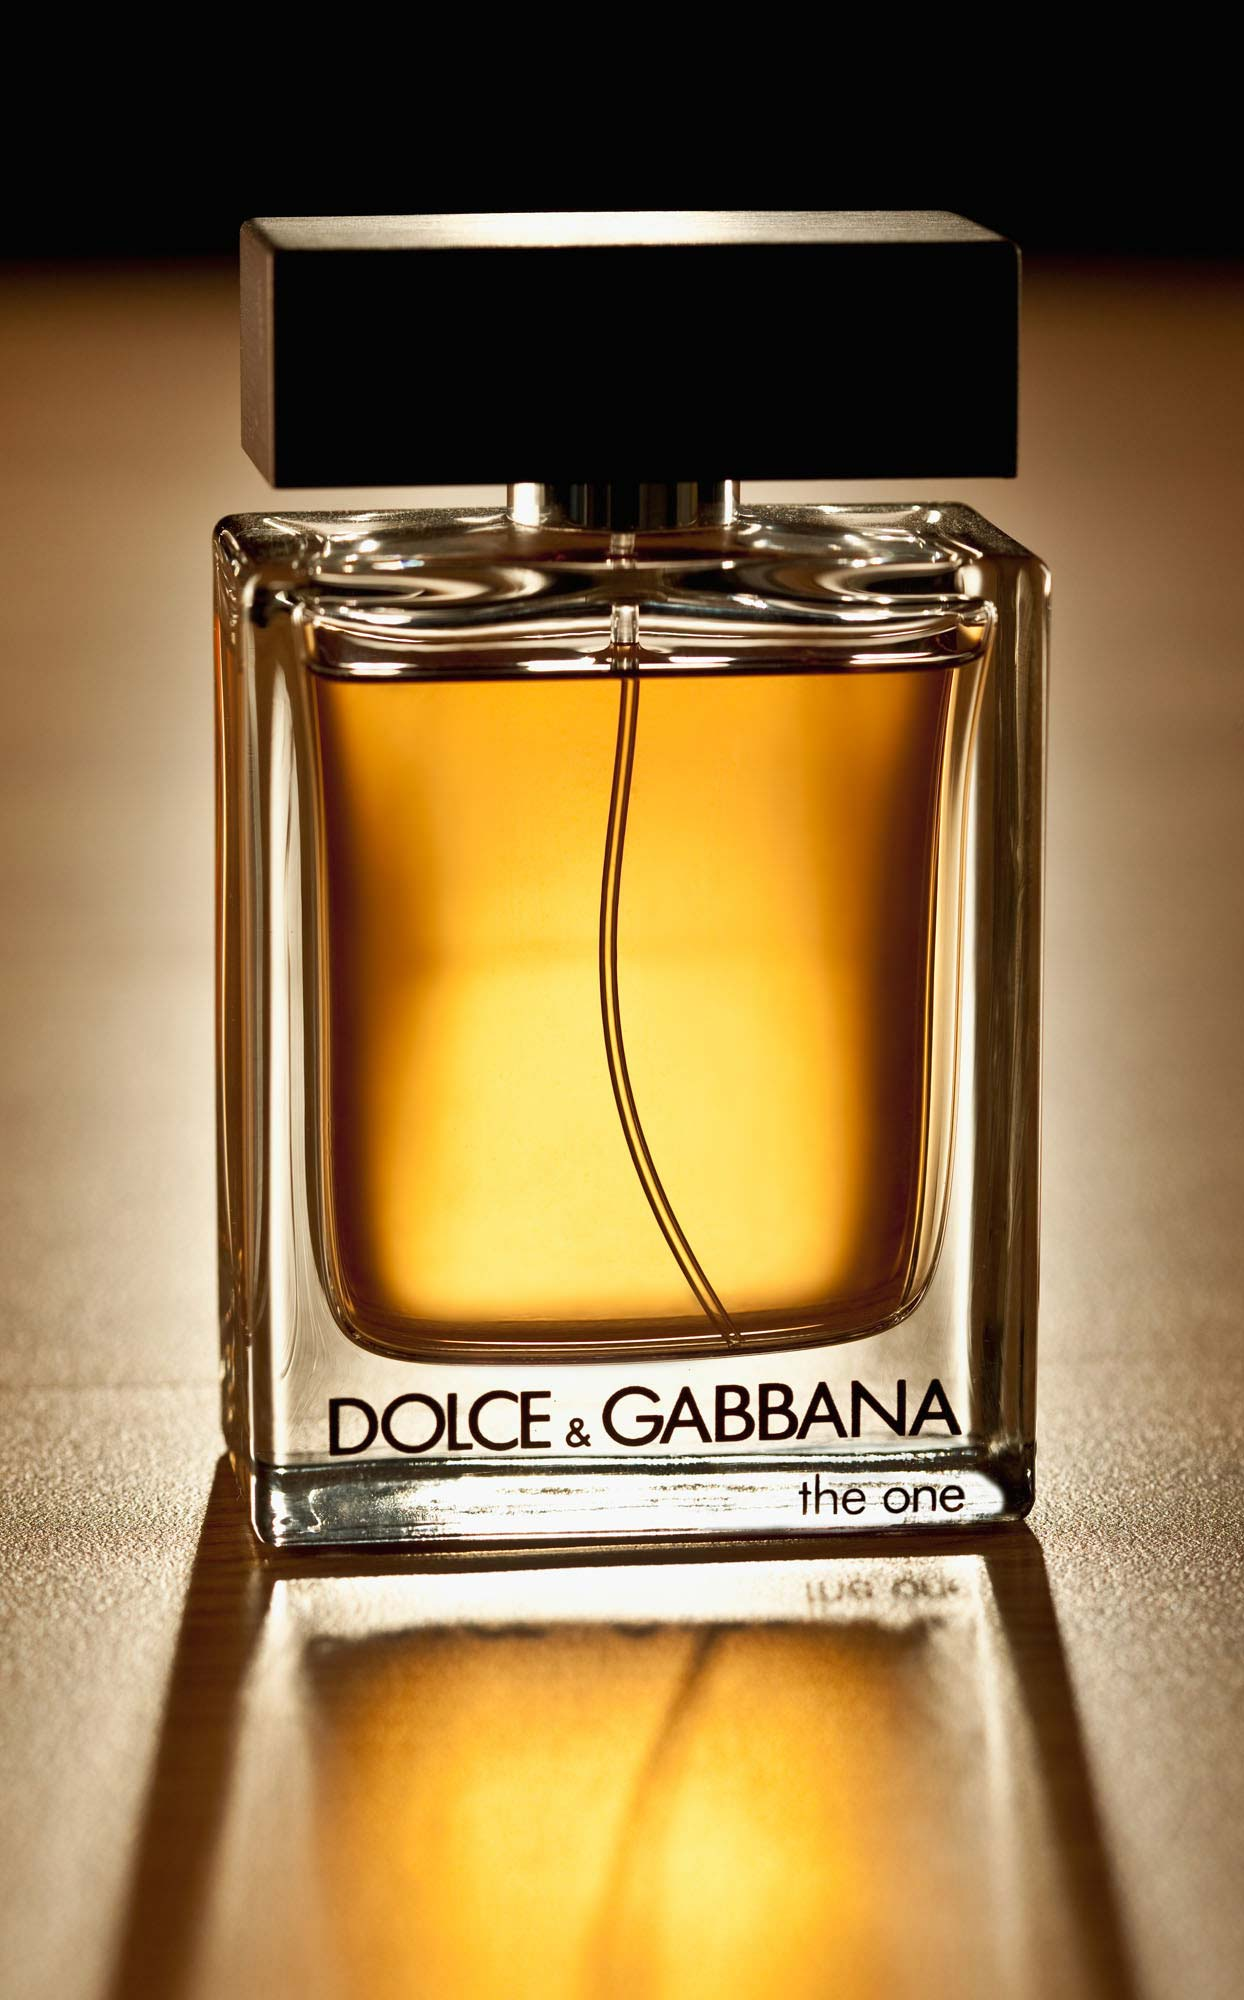 Dolce & Gabbana Cologne on wood table, product photography with dramatic lighting  | Still Life Photography | Shot in Denver, Colorado